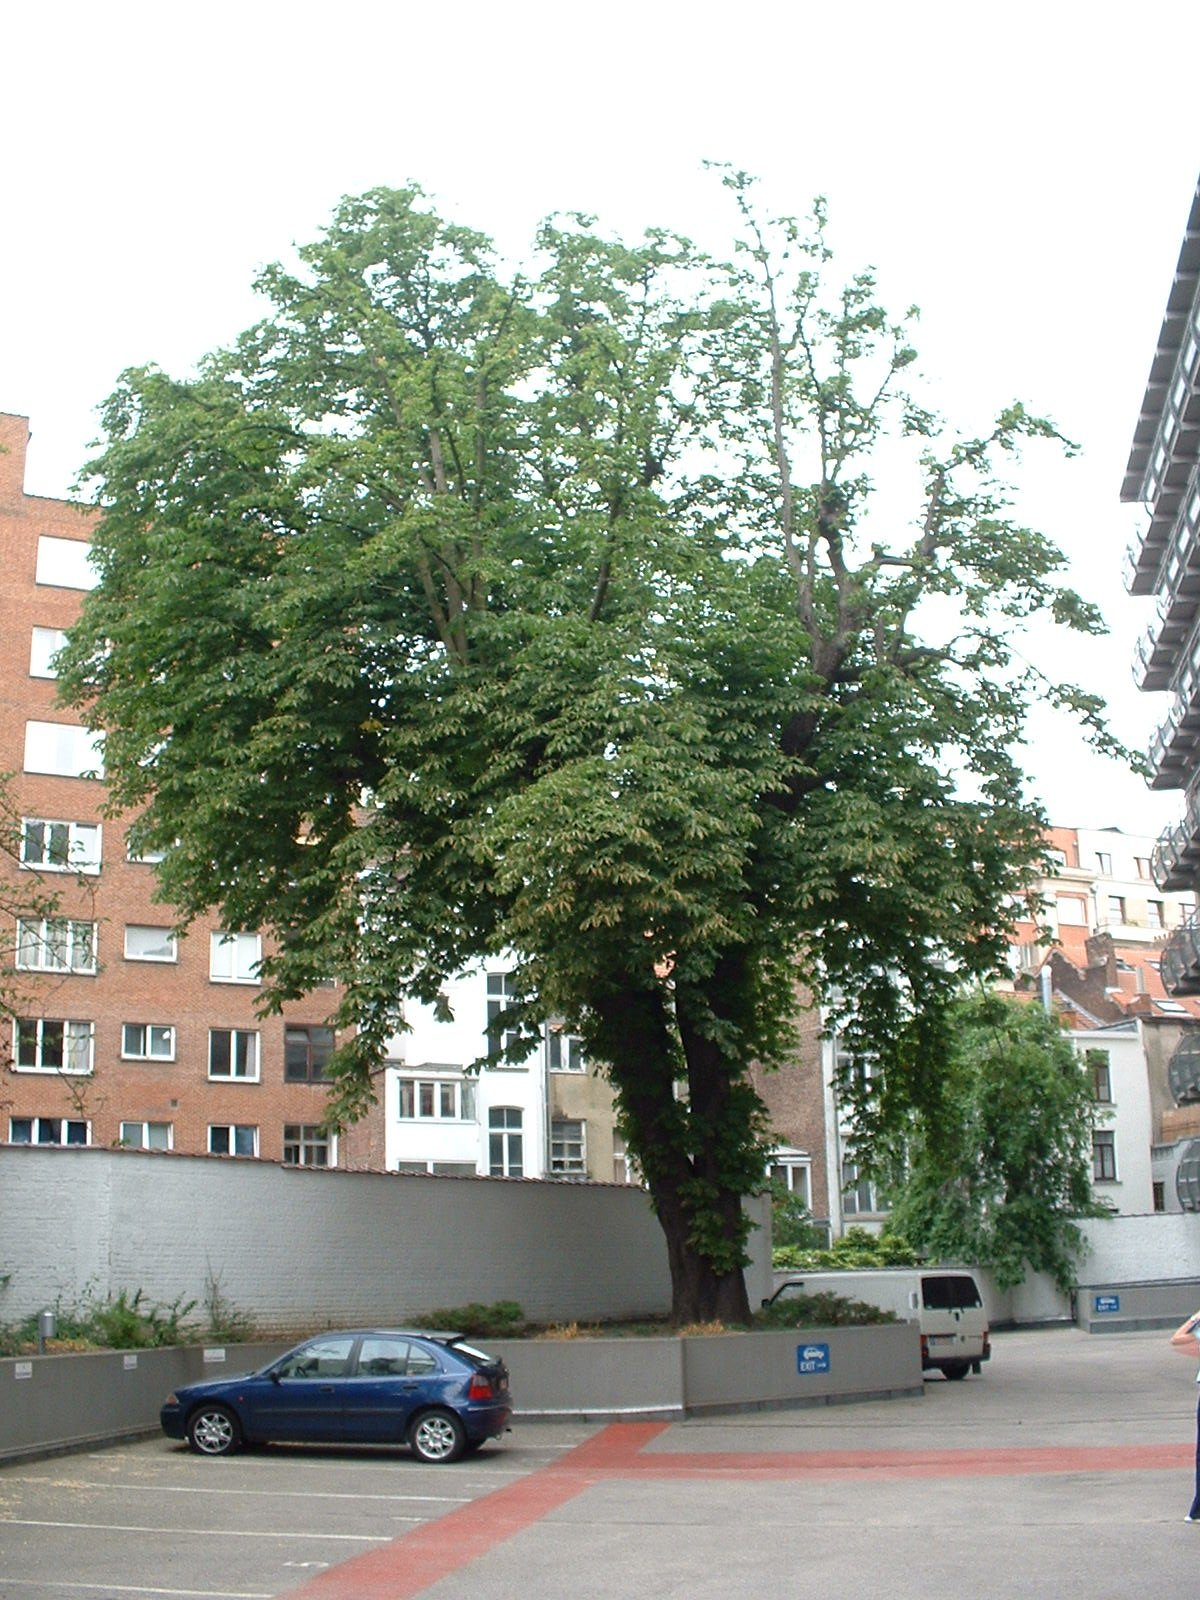 Marronnier commun – Etterbeek, Avenue des Nerviens, 9-31 –  03 Juin 2003